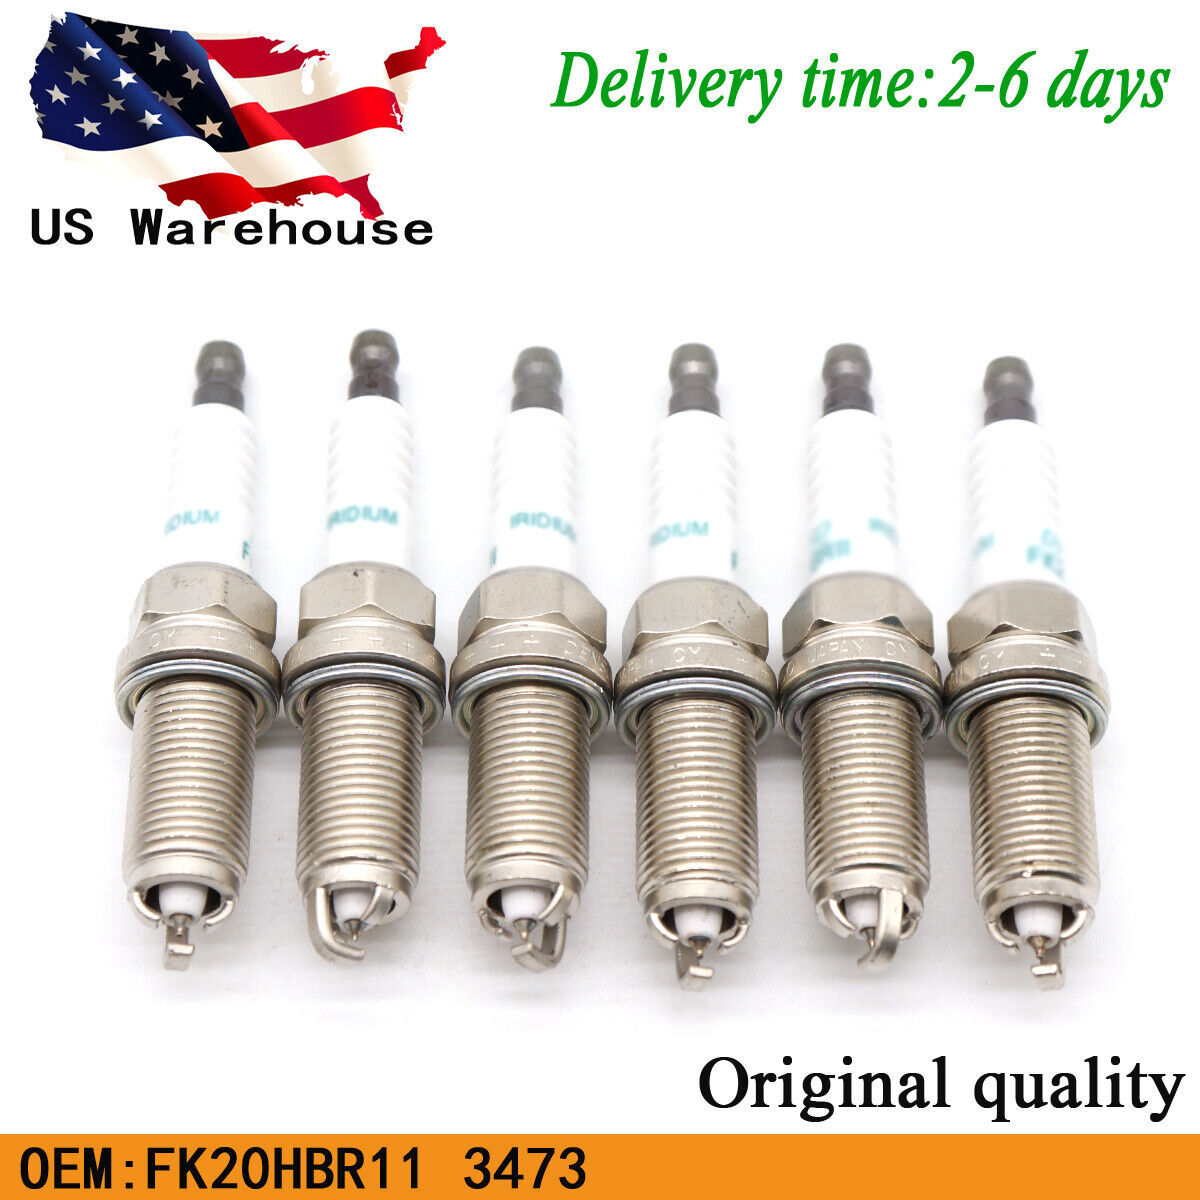 NEW Spark Plug Denso Iridium For Lexus GS300 GS450h IS F IS250 IS350 LS460 RC350